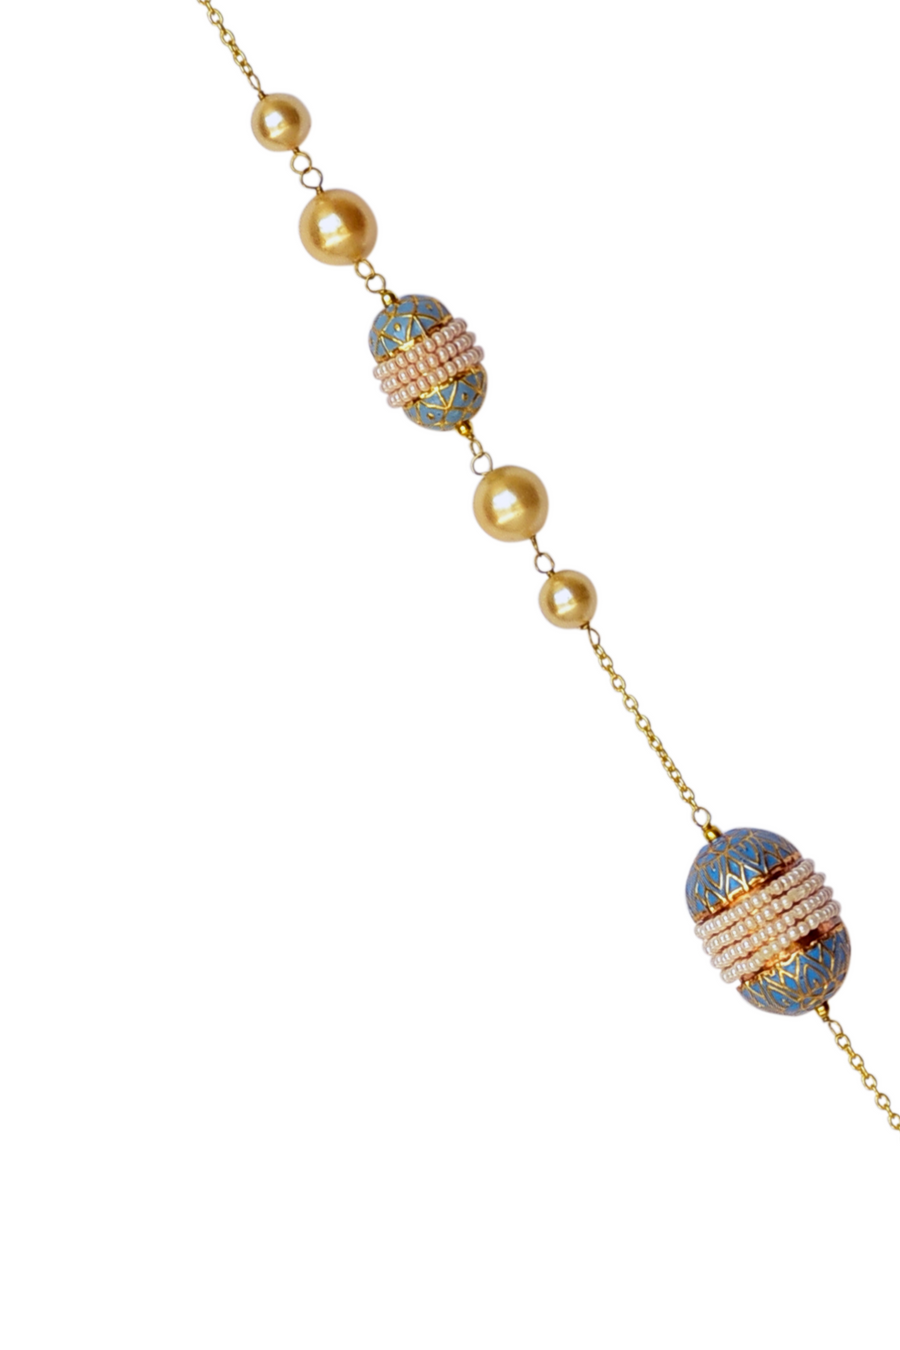 Noorhan Necklace - Pearl and Enamel Meena